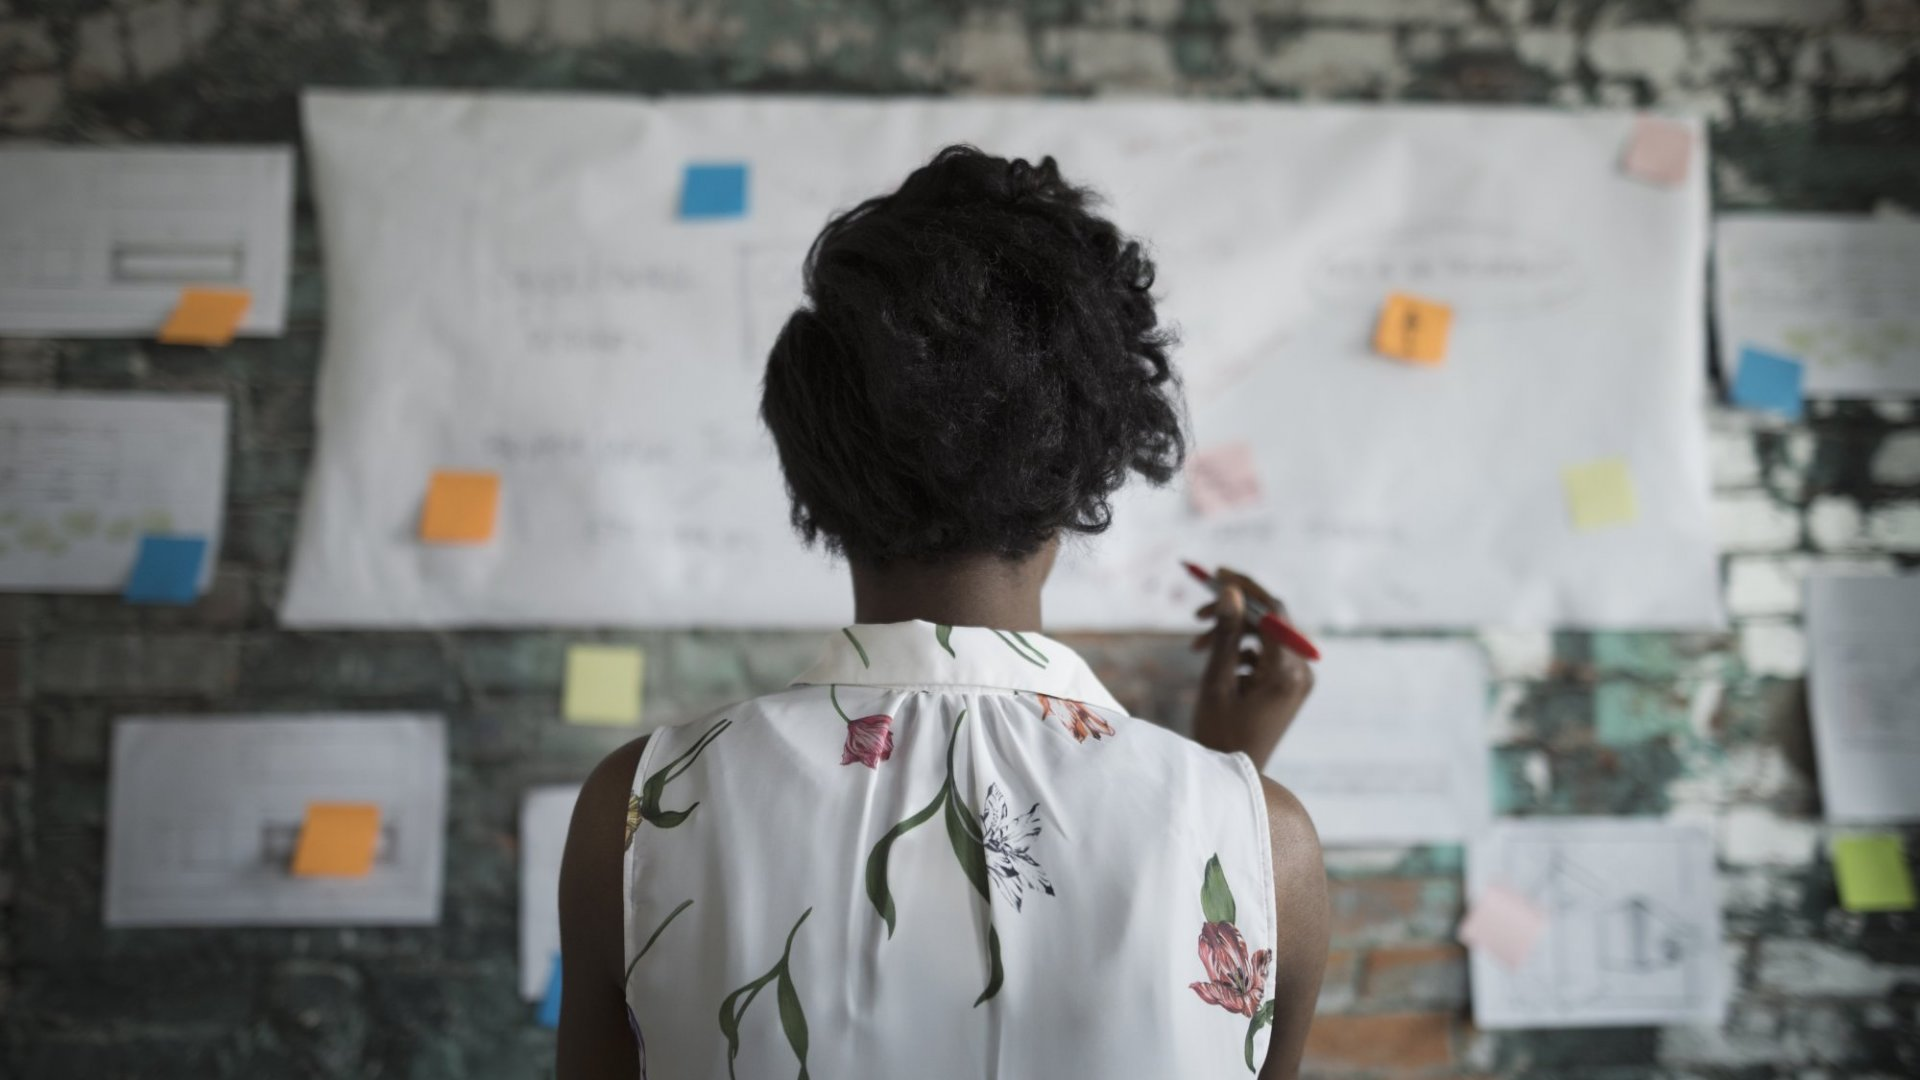 How to Be an Entrepreneur While Working for an Organization